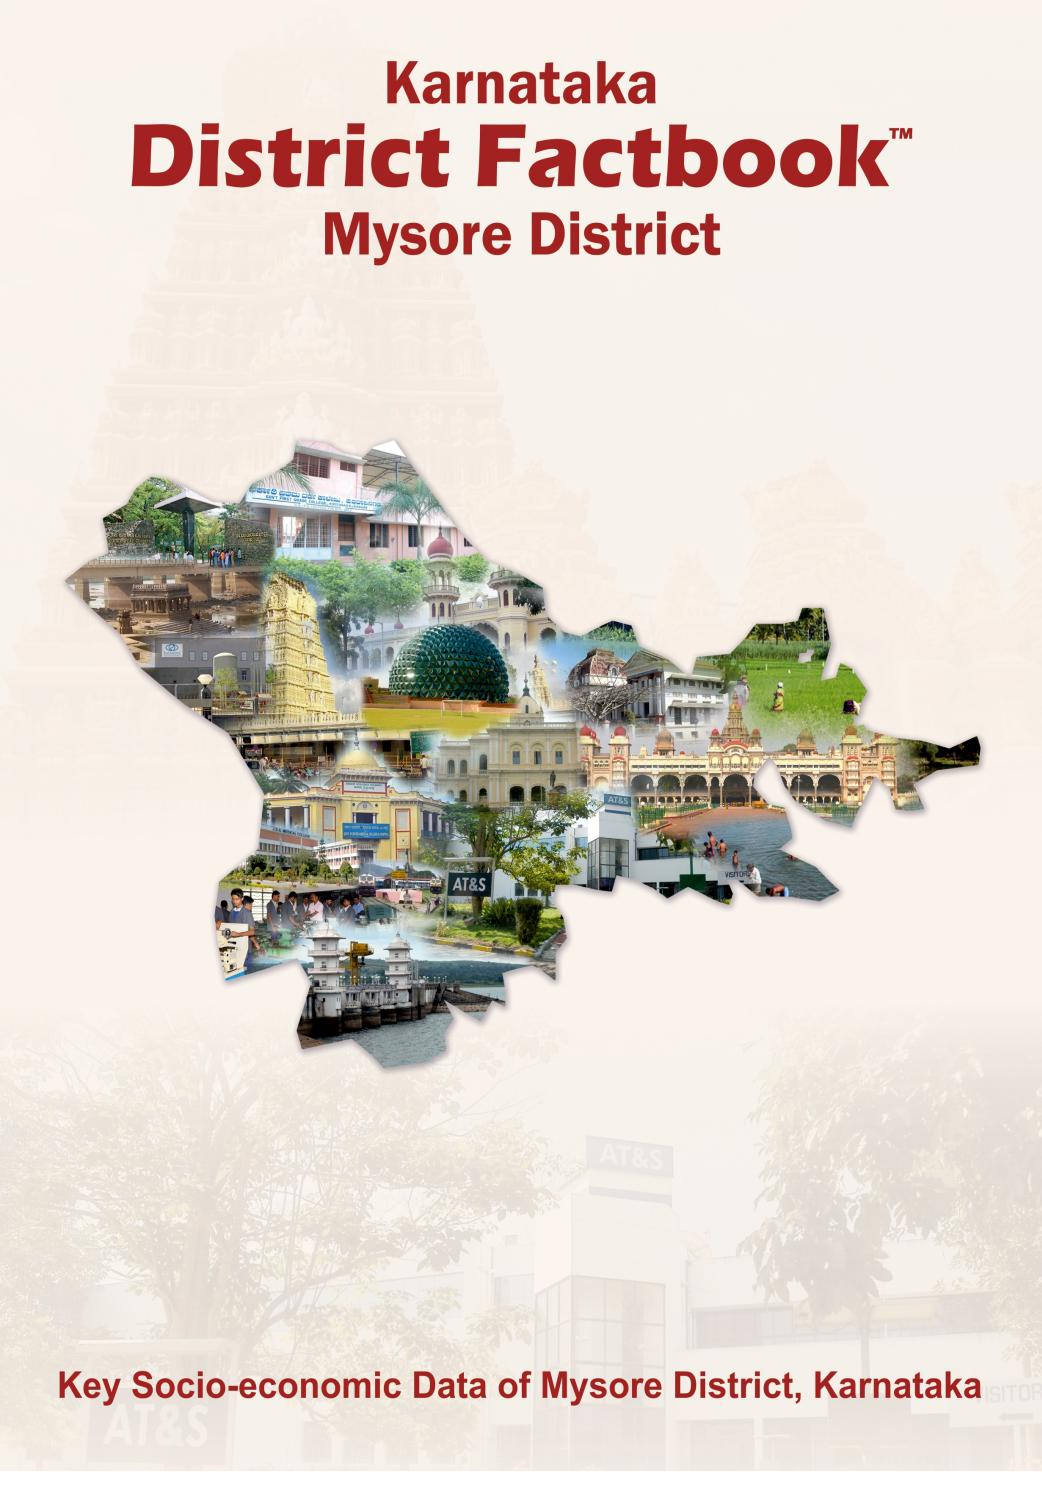 KARNATAKA DISTRICT FACTBOOK : MYSORE DISTRICT by